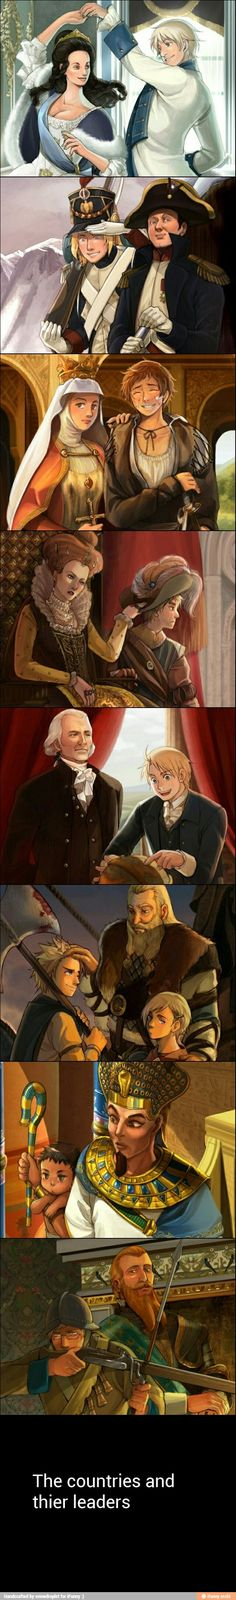 Hetalian characters interacting with historical figures from their nation